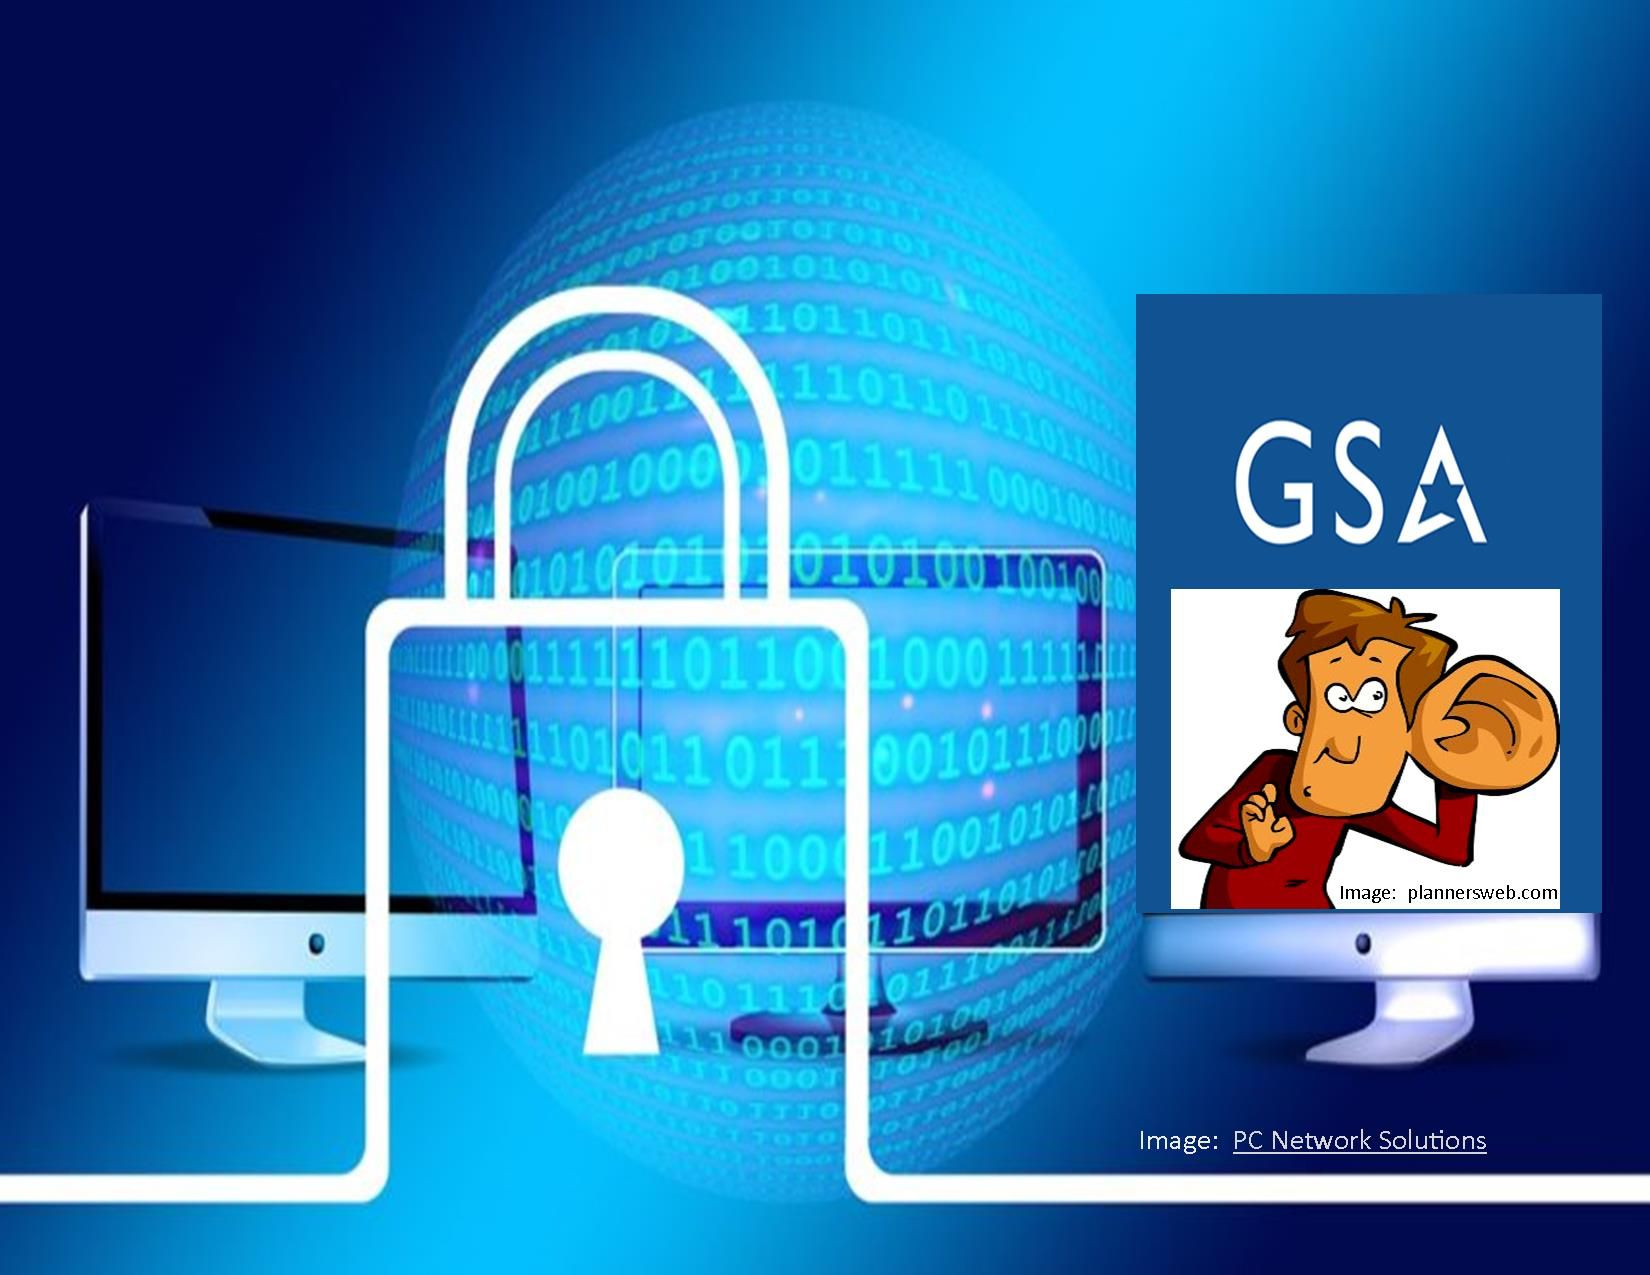 Gsa Wants Input On Highly Adaptive Security Services